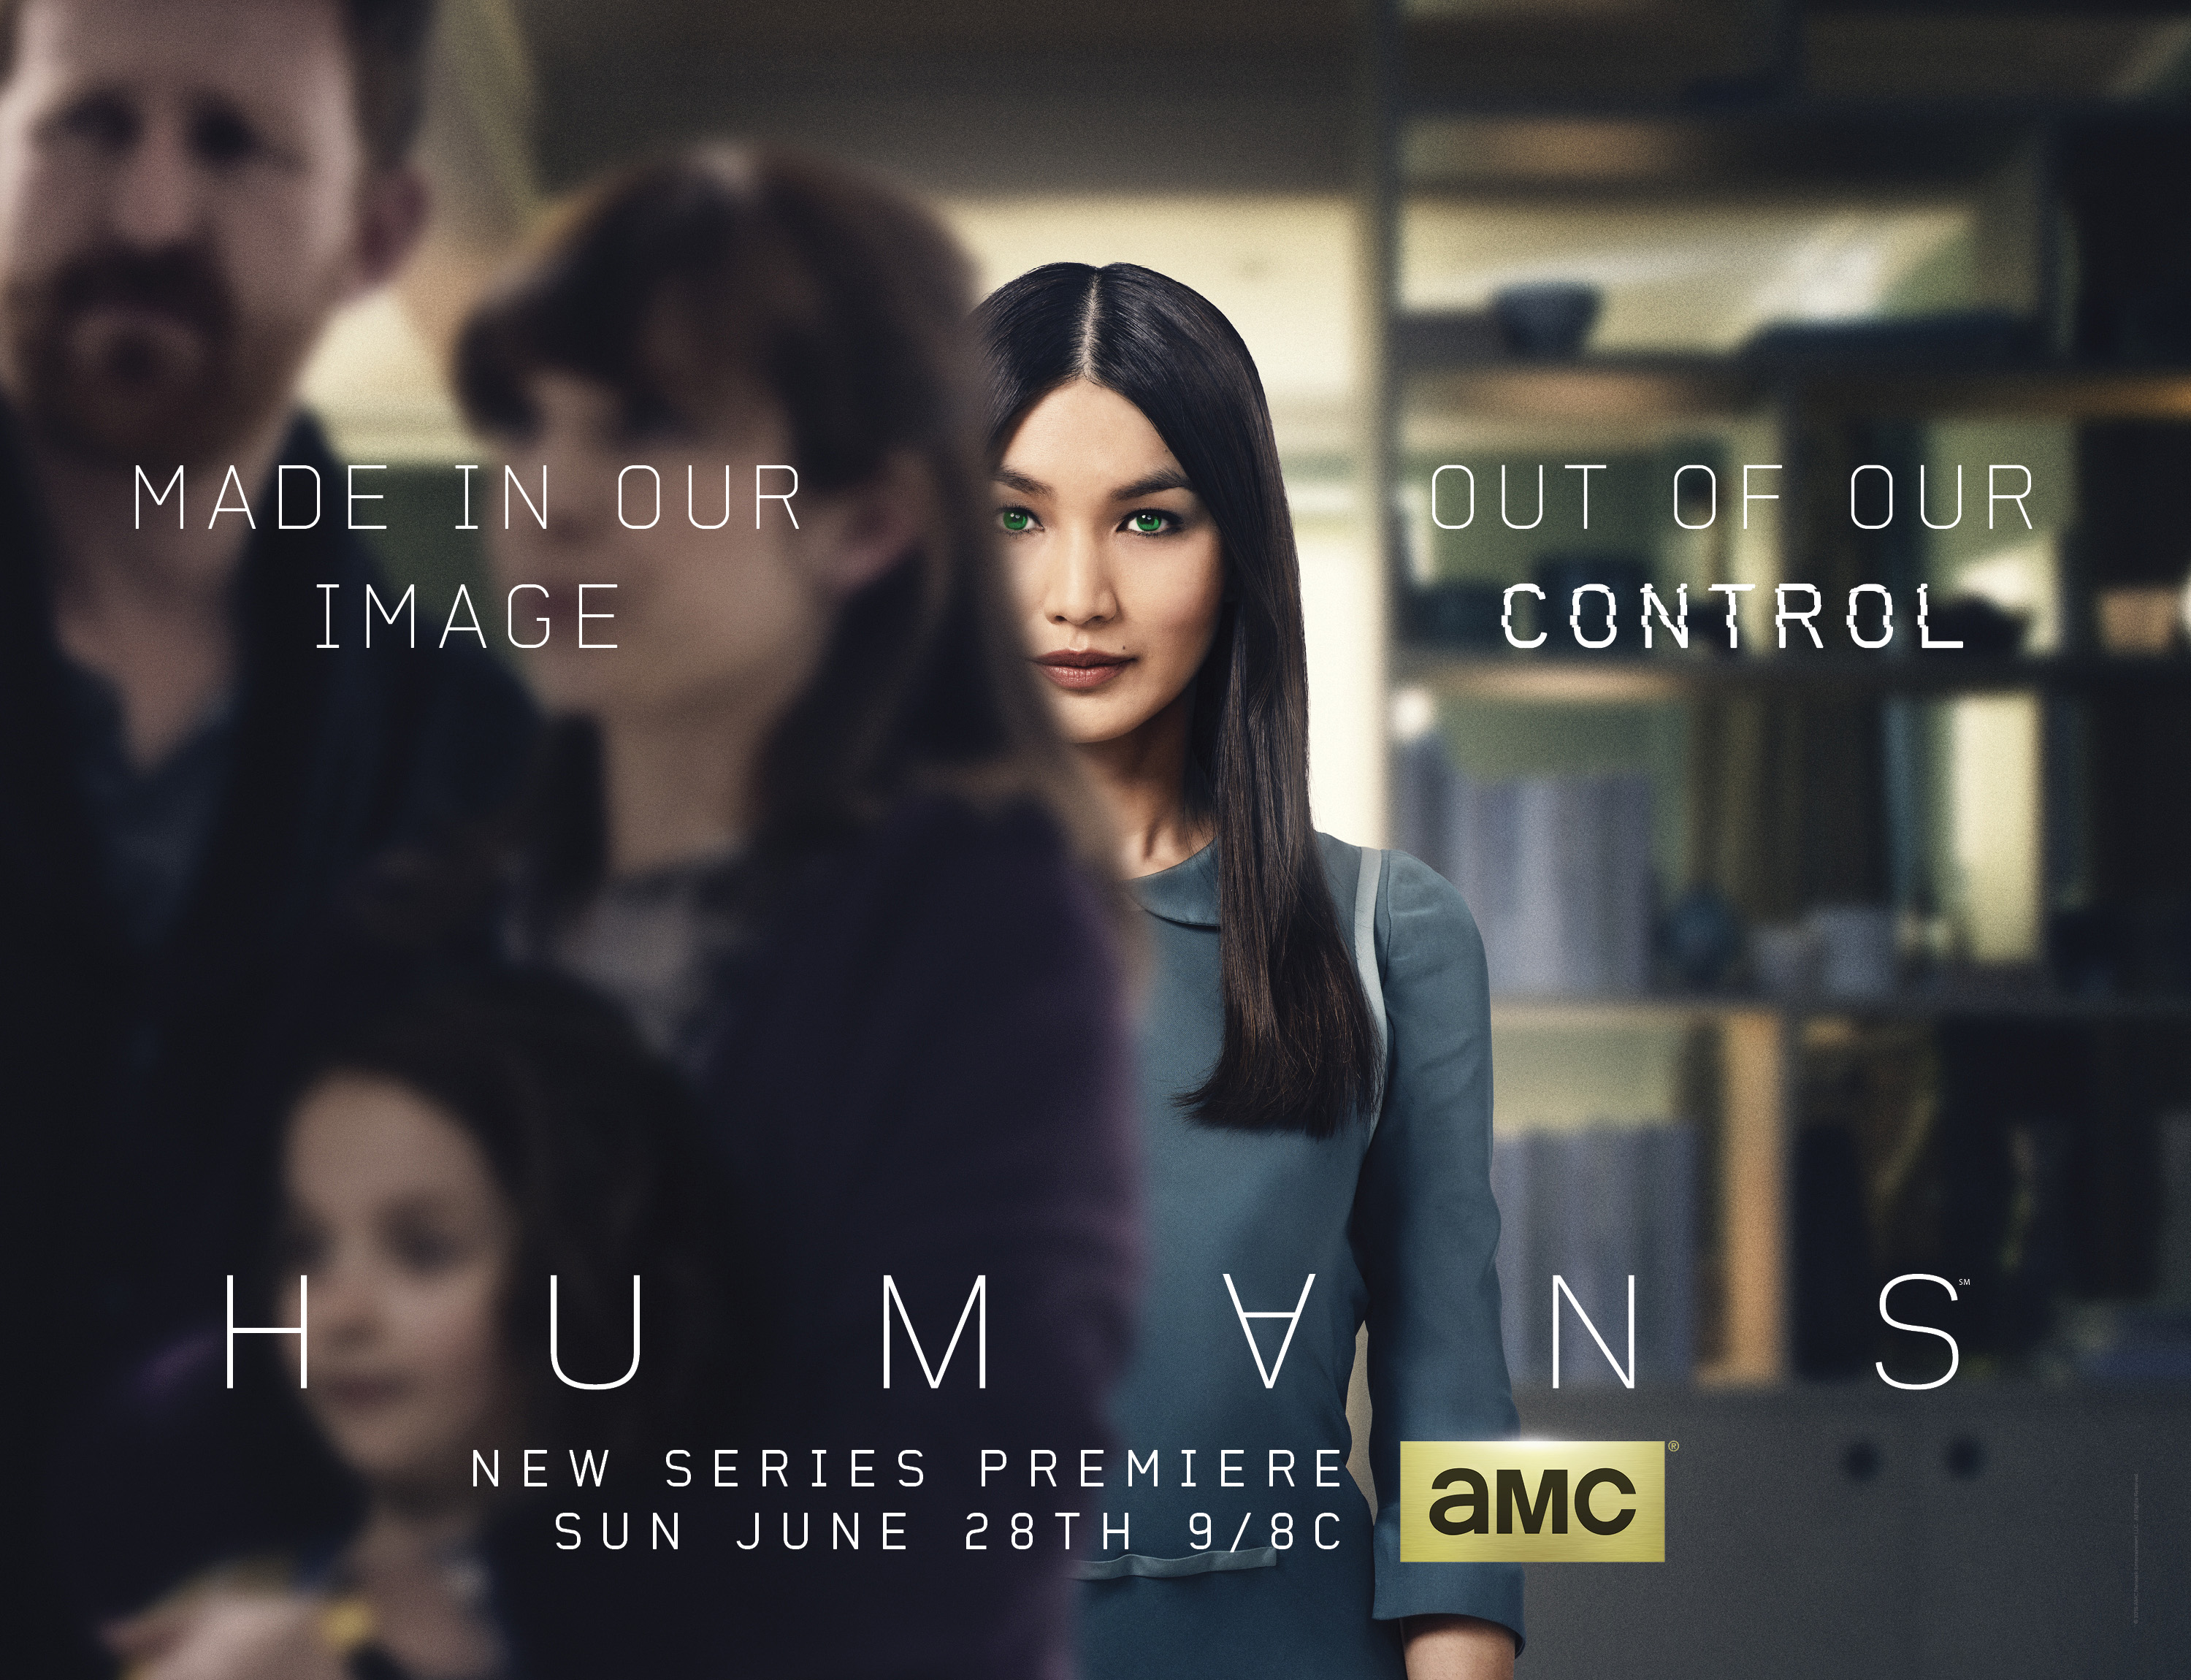 HUMANS FINAL KEY ART 2 SHEET